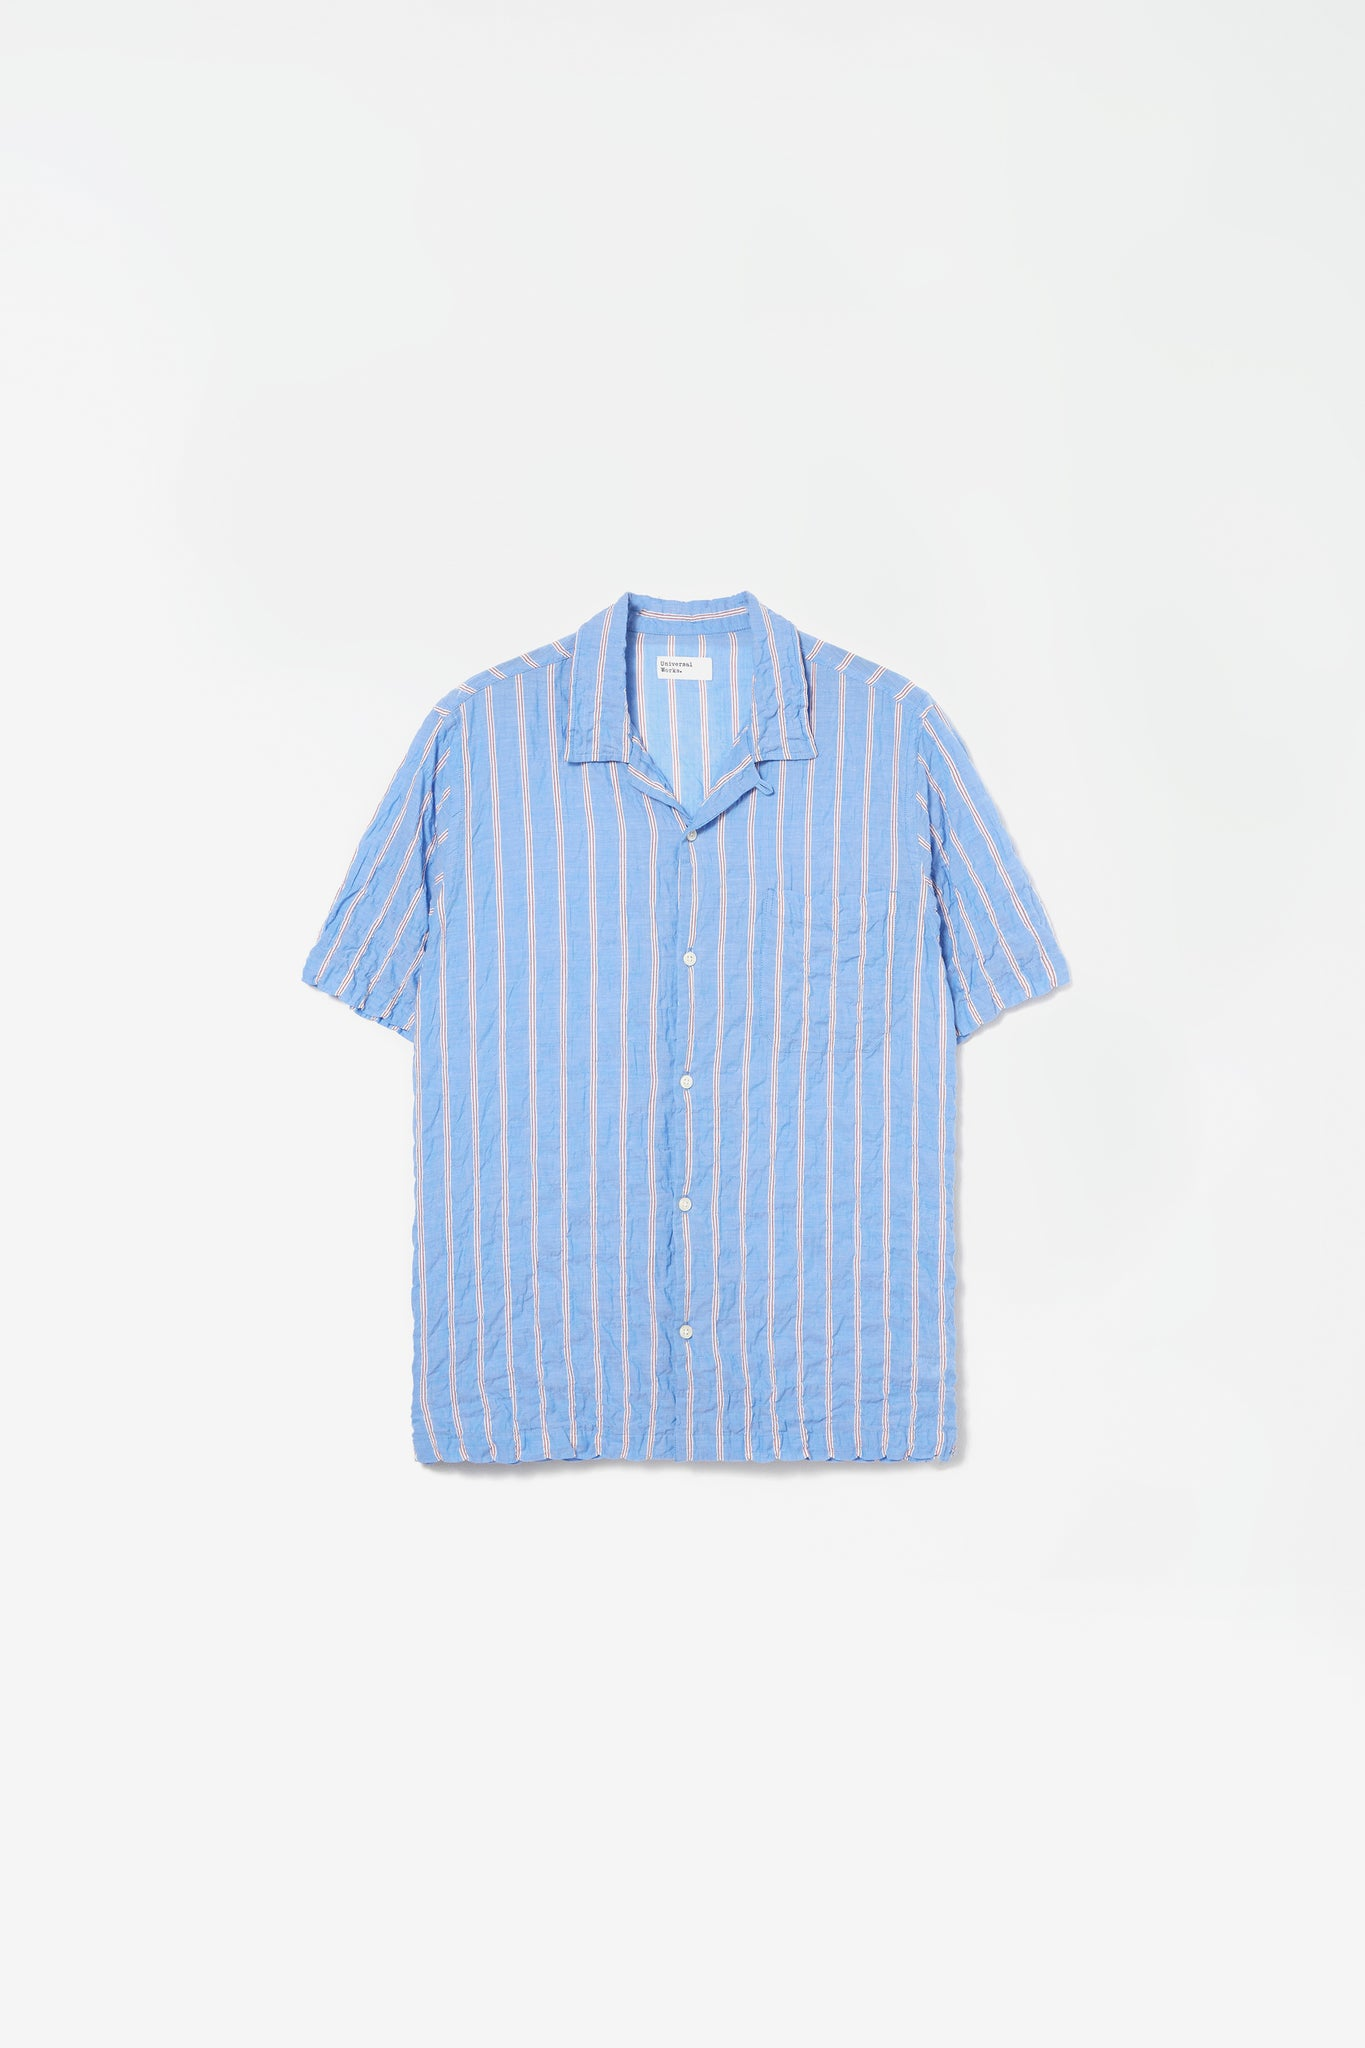 Road shirt ranch stripe pale blue